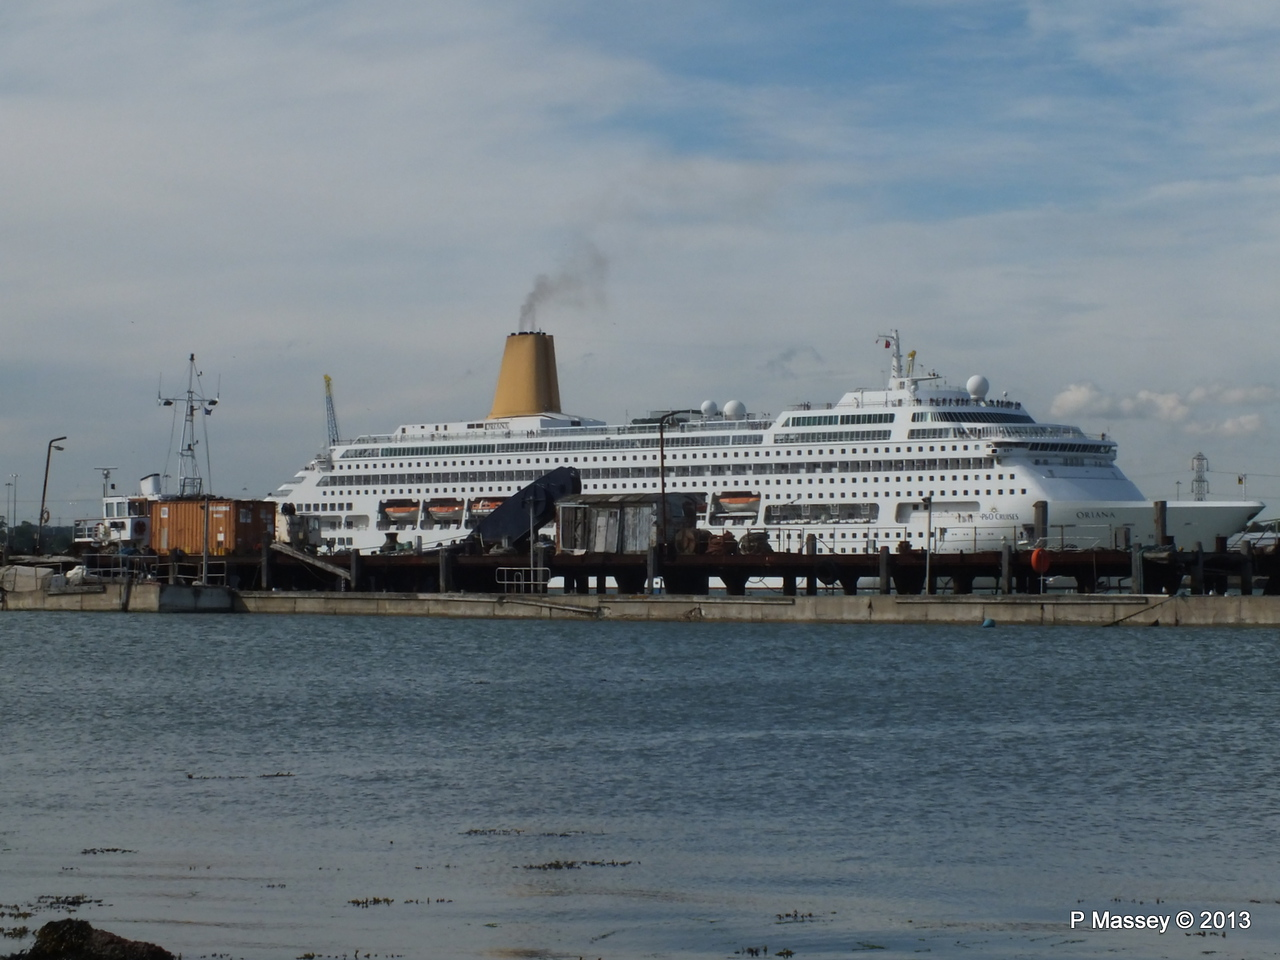 ORIANA over Husbands Jetty PDM 27-05-2013 17-04-18